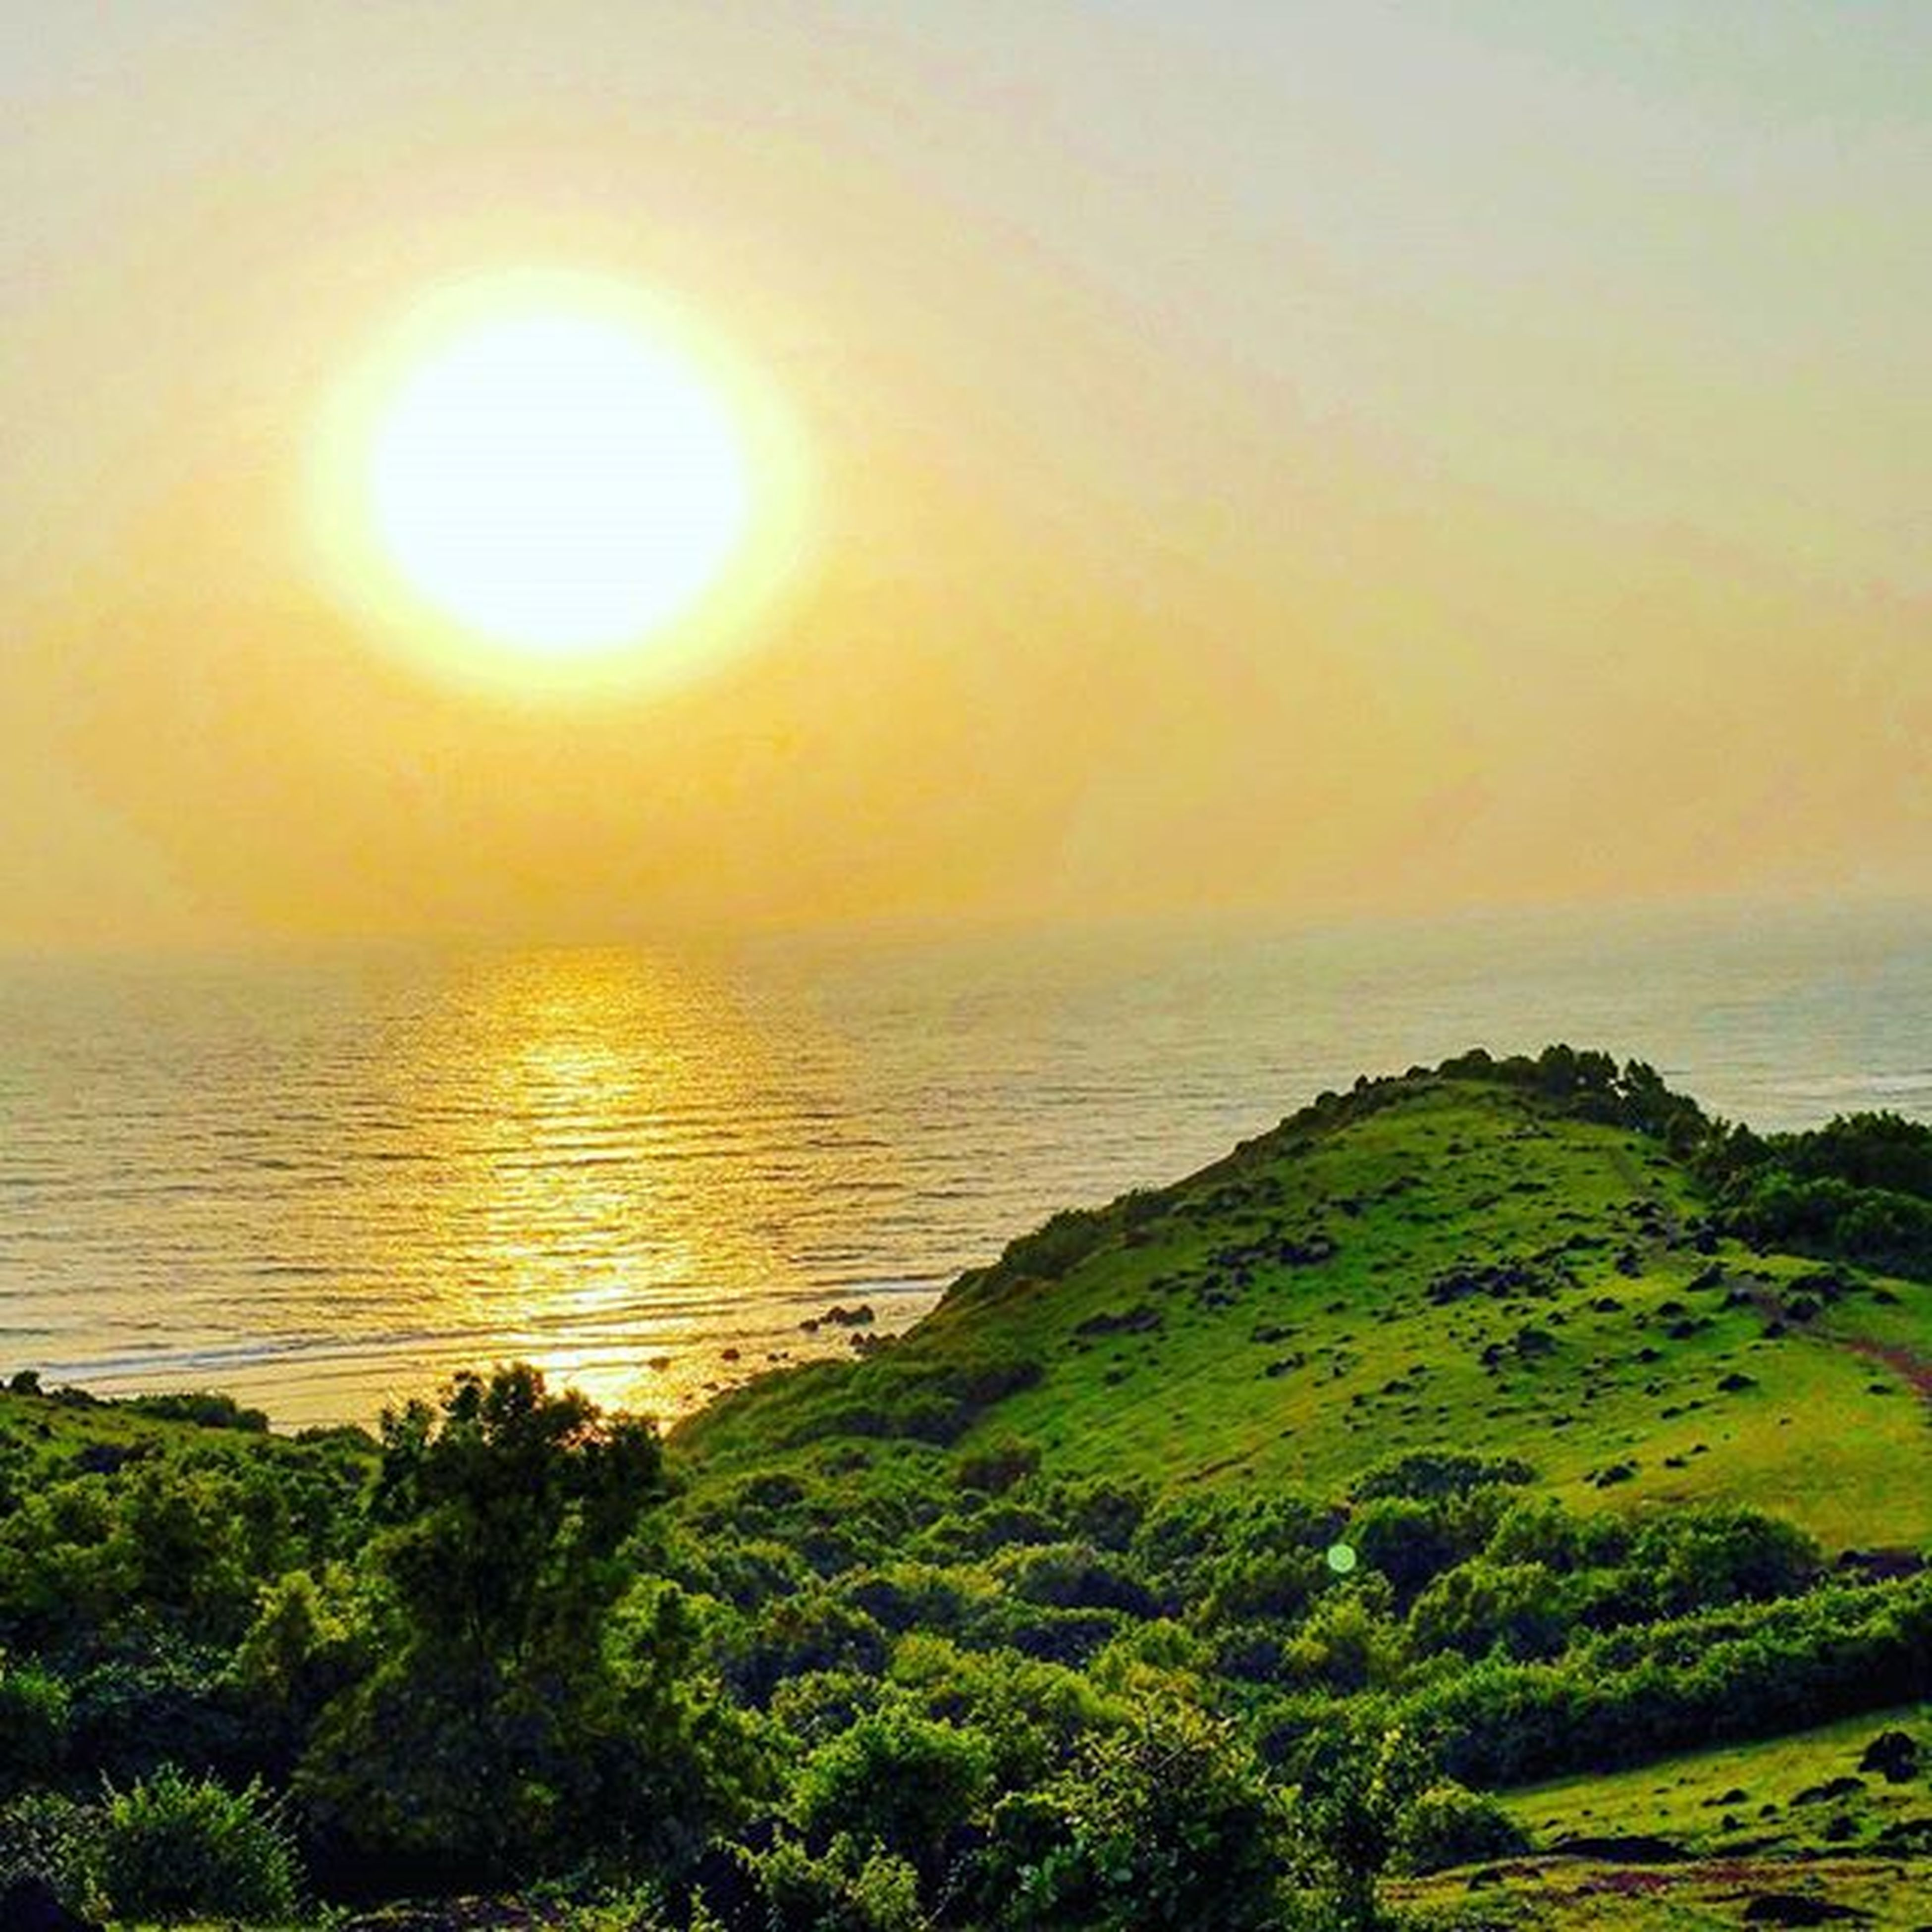 sea, scenics, tranquil scene, sun, horizon over water, water, beauty in nature, tranquility, sunset, nature, idyllic, sky, tree, sunlight, orange color, green color, outdoors, growth, non-urban scene, no people